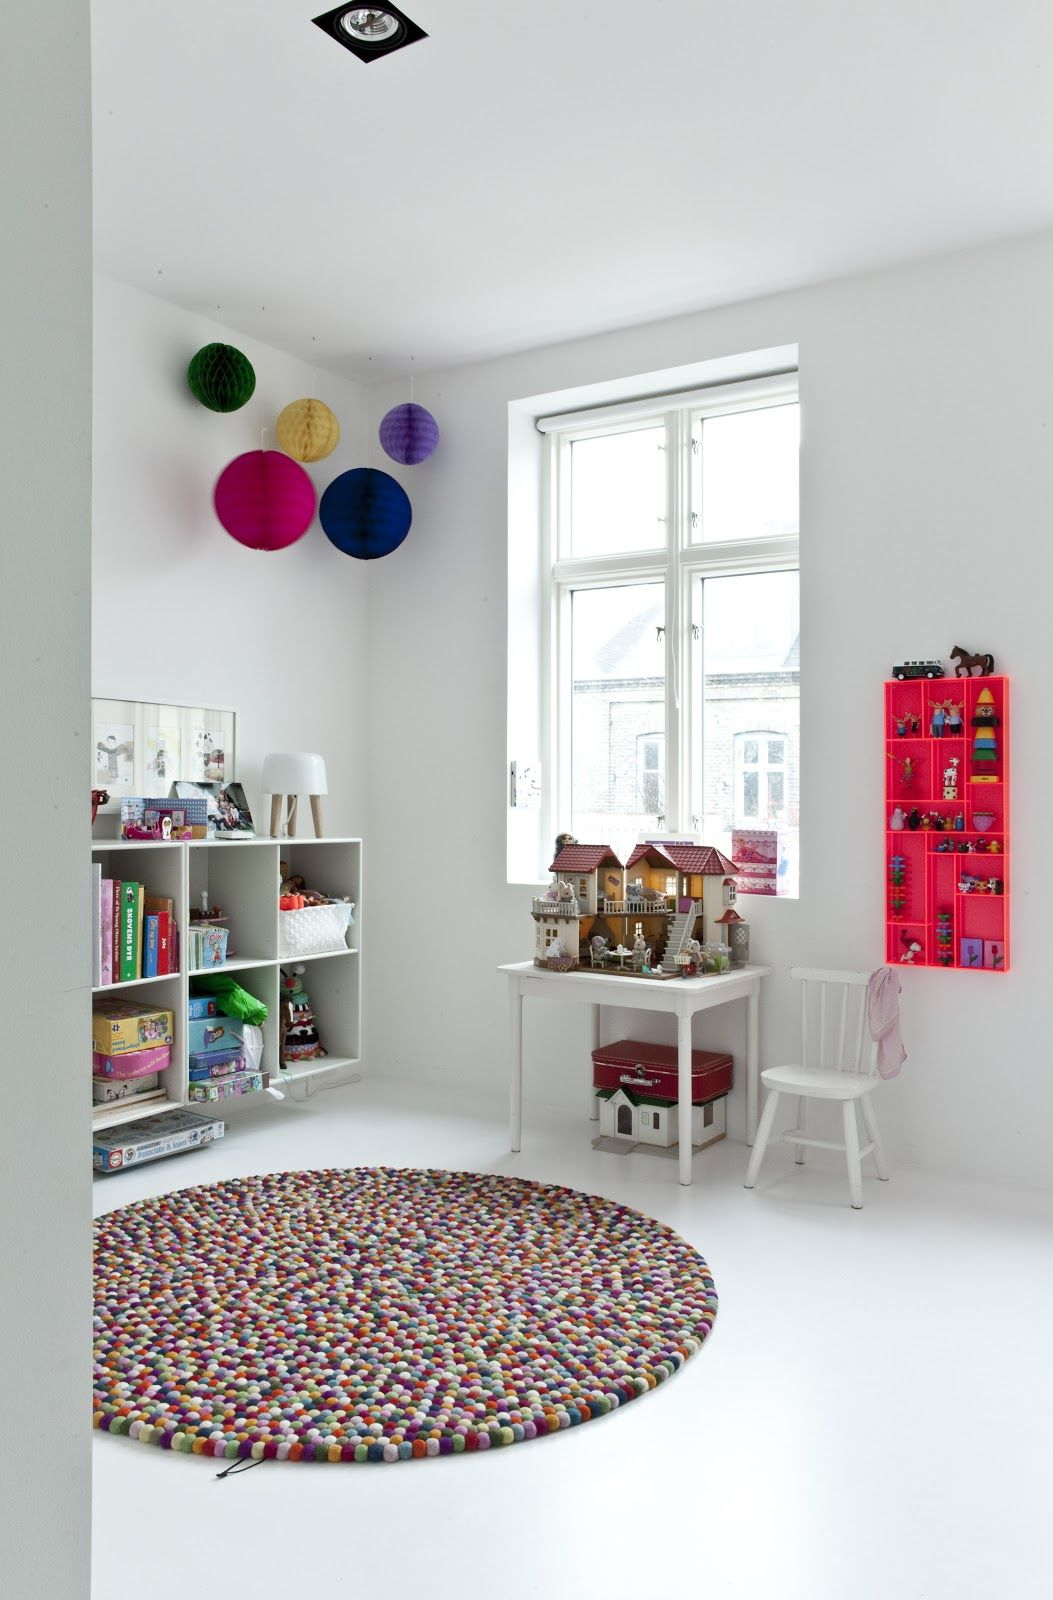 Rugs For Children's Rooms Colouful Children 39s Room Featuring The Hay Pinocchio Rug